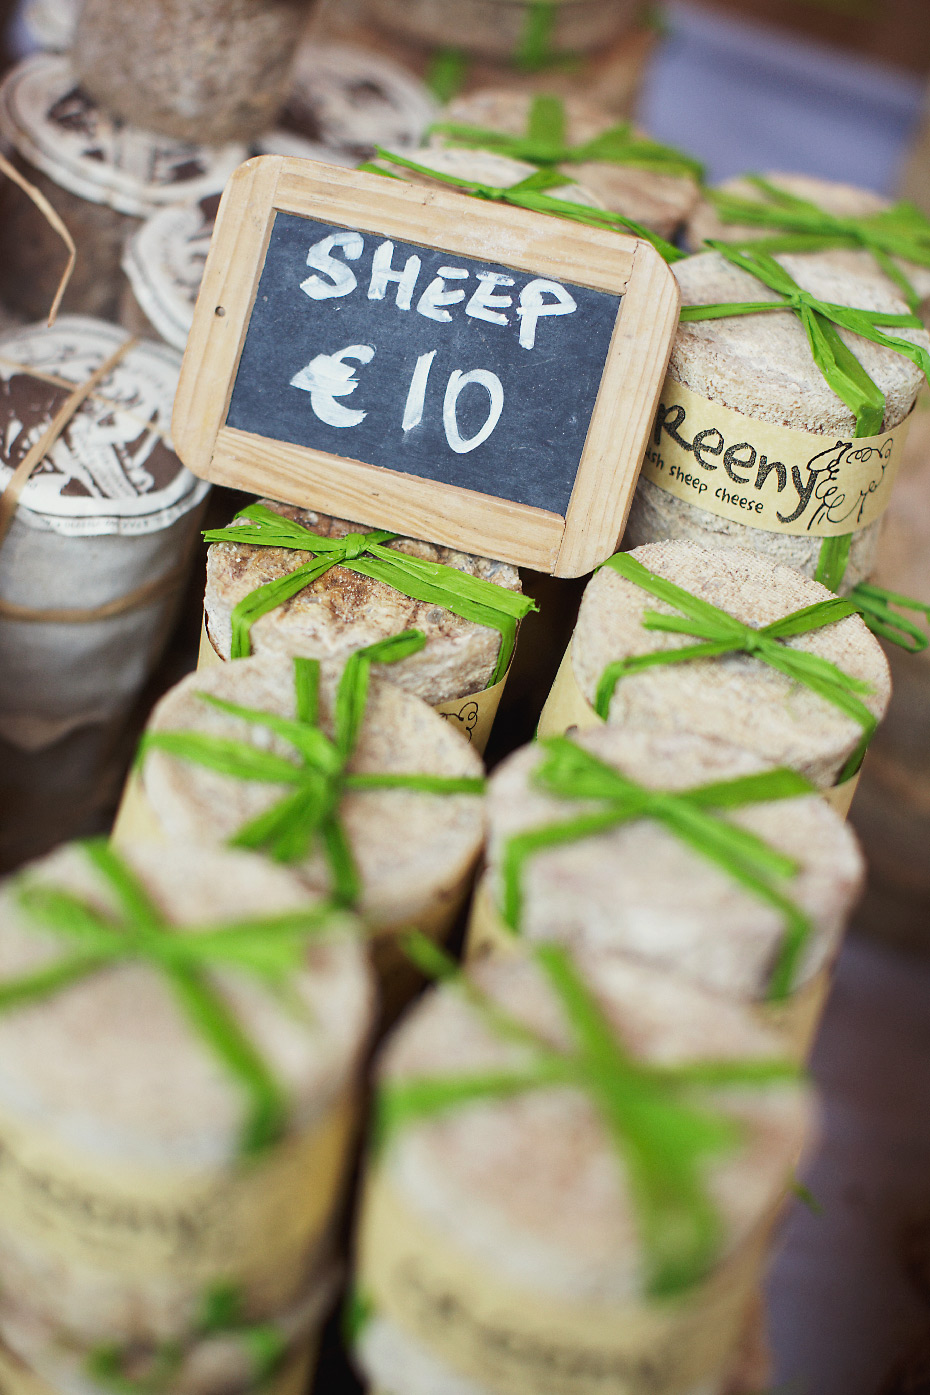 Stacey Van Berkel Photography I Creeny Sheep Cheese from Corleggy Cheeses I Dublin Farmer's Market I Dublin Ireland